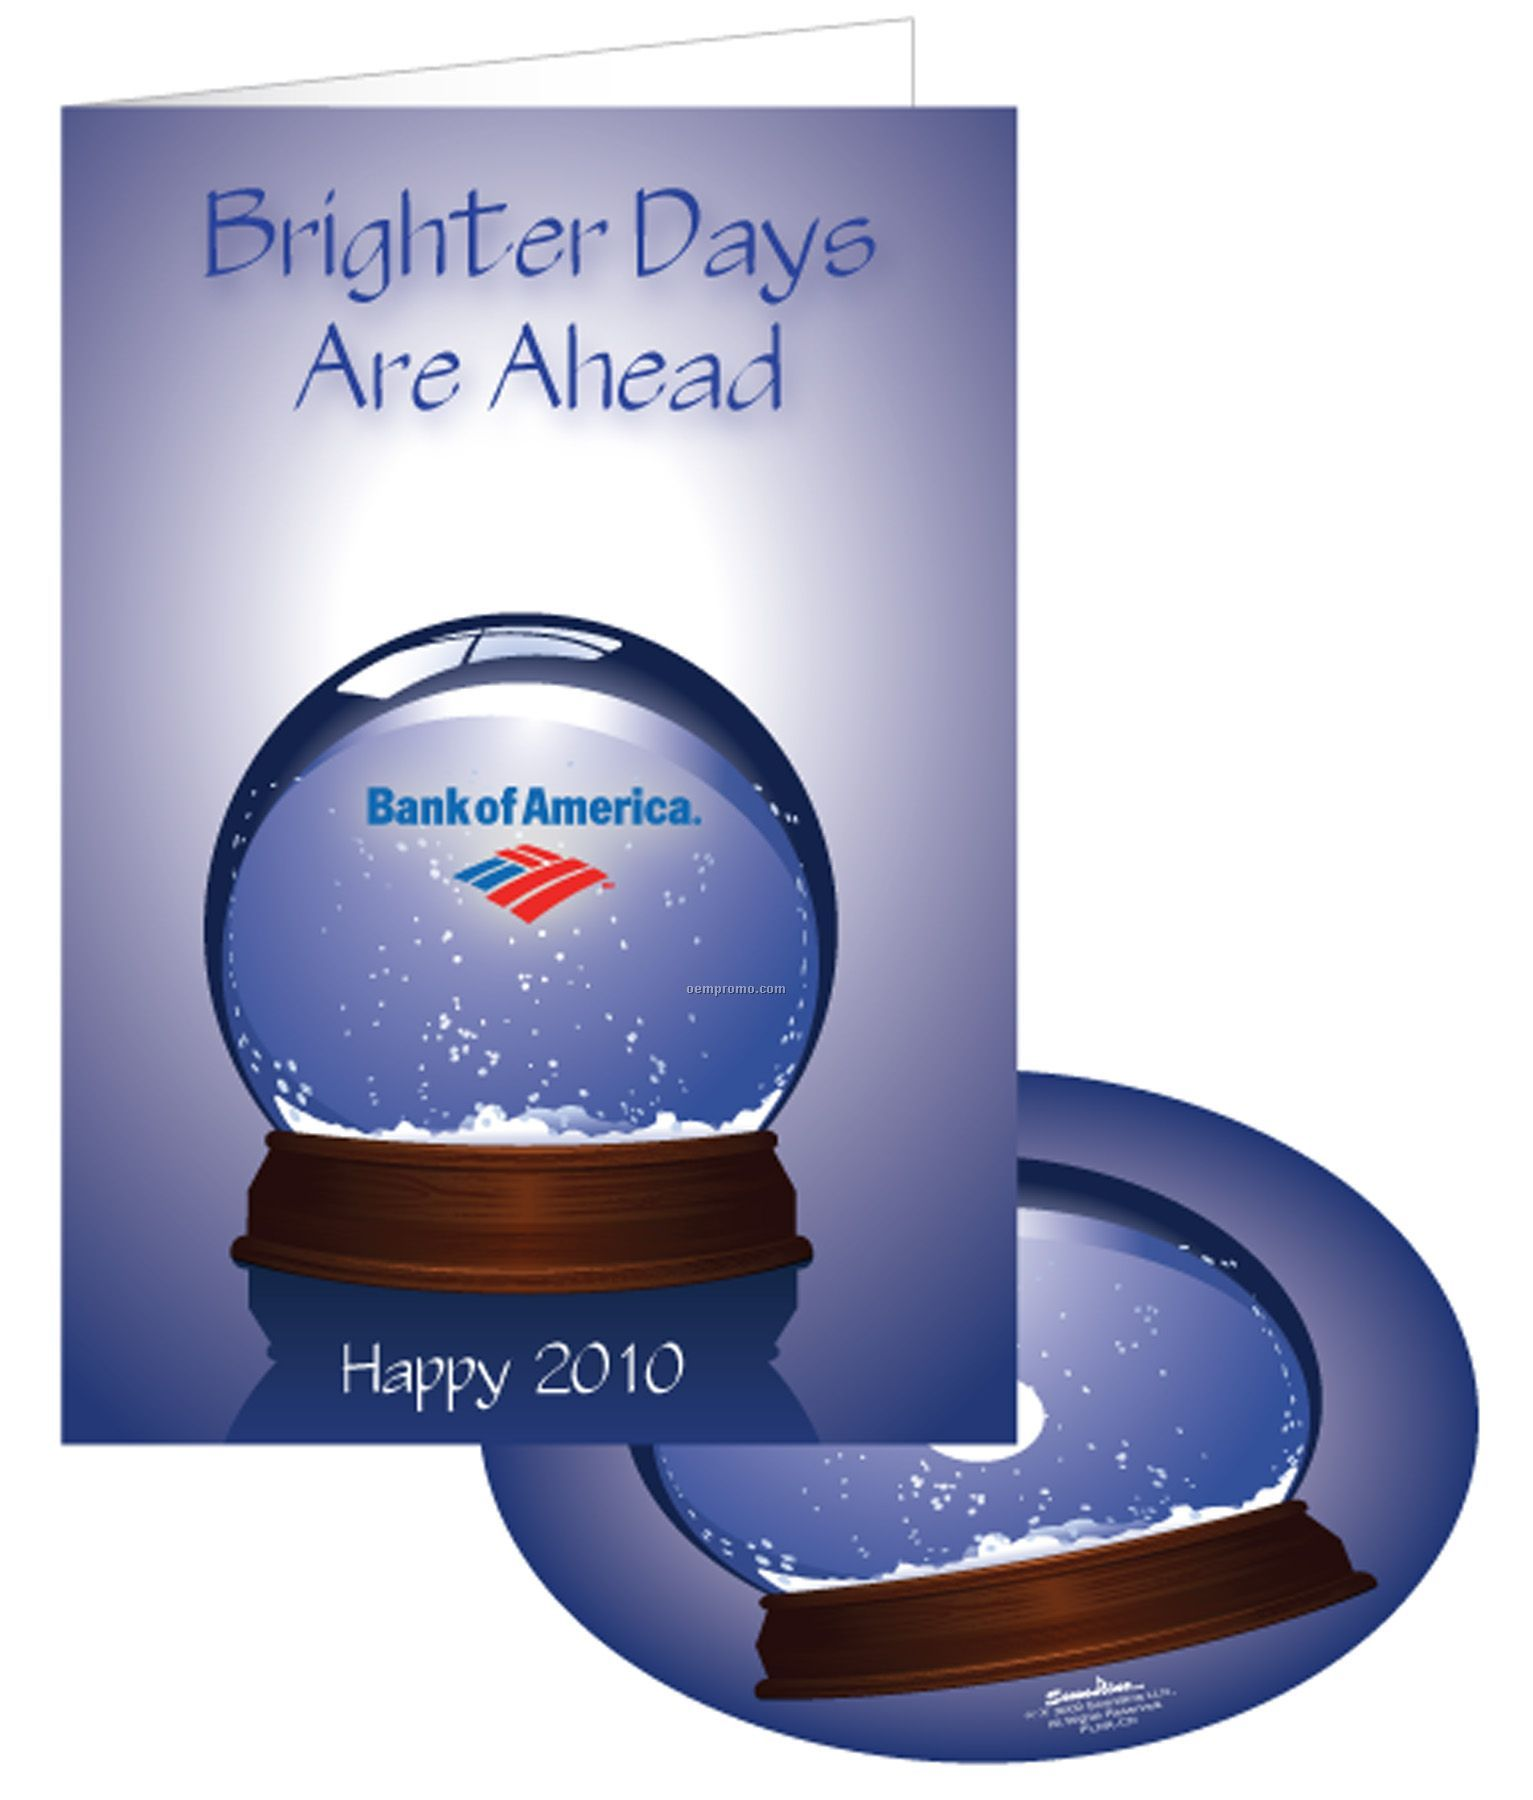 brighter days ahead aa case study It appealed to those who are keen on staying one step ahead the direct mailer aimed to demonstrate an understanding of their day the direct mail case study.